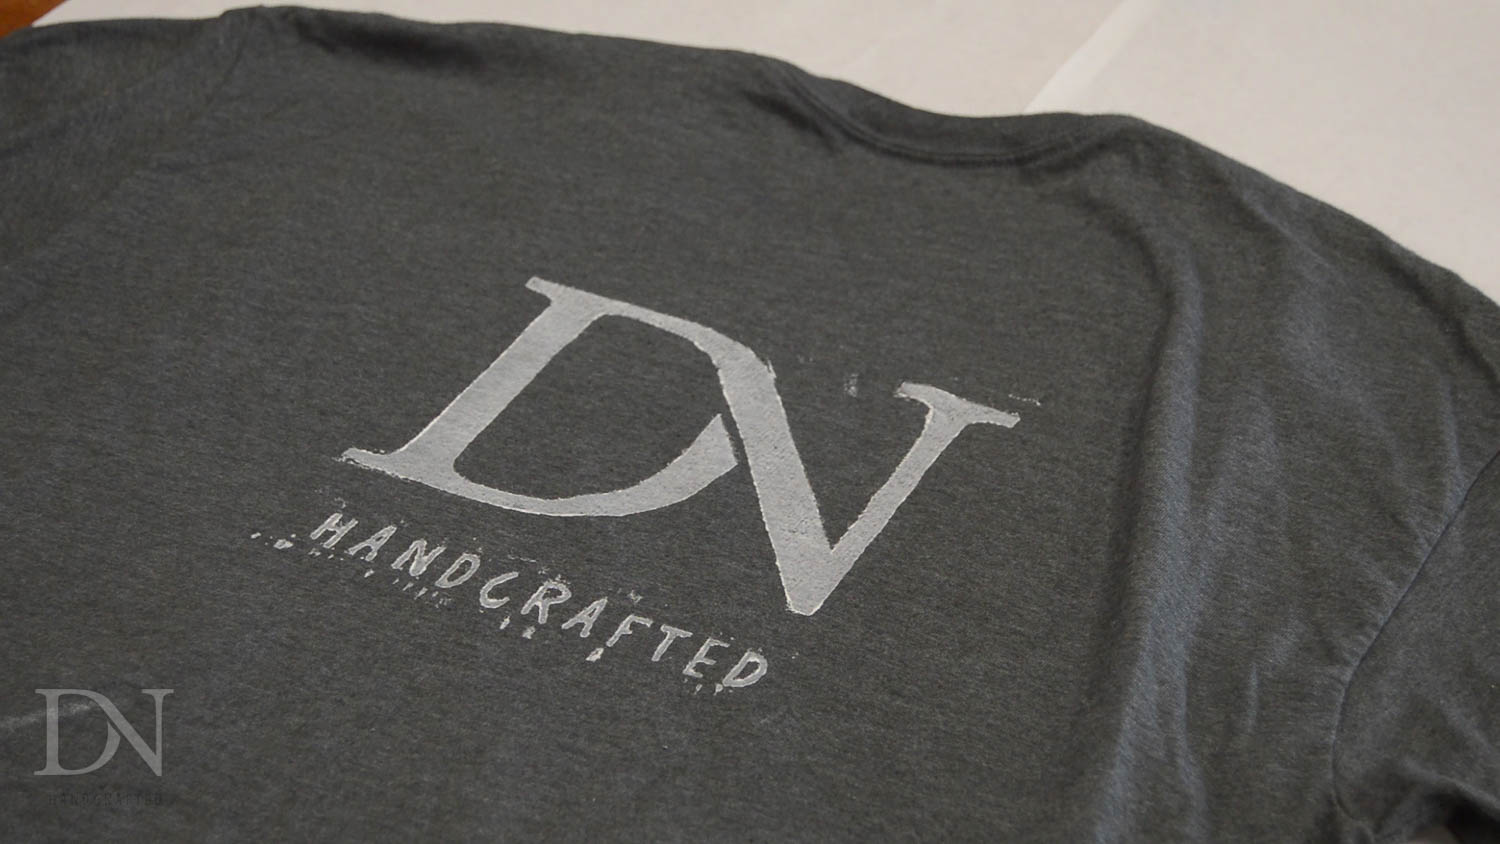 Block Printed Shirts Dn Handcrafted